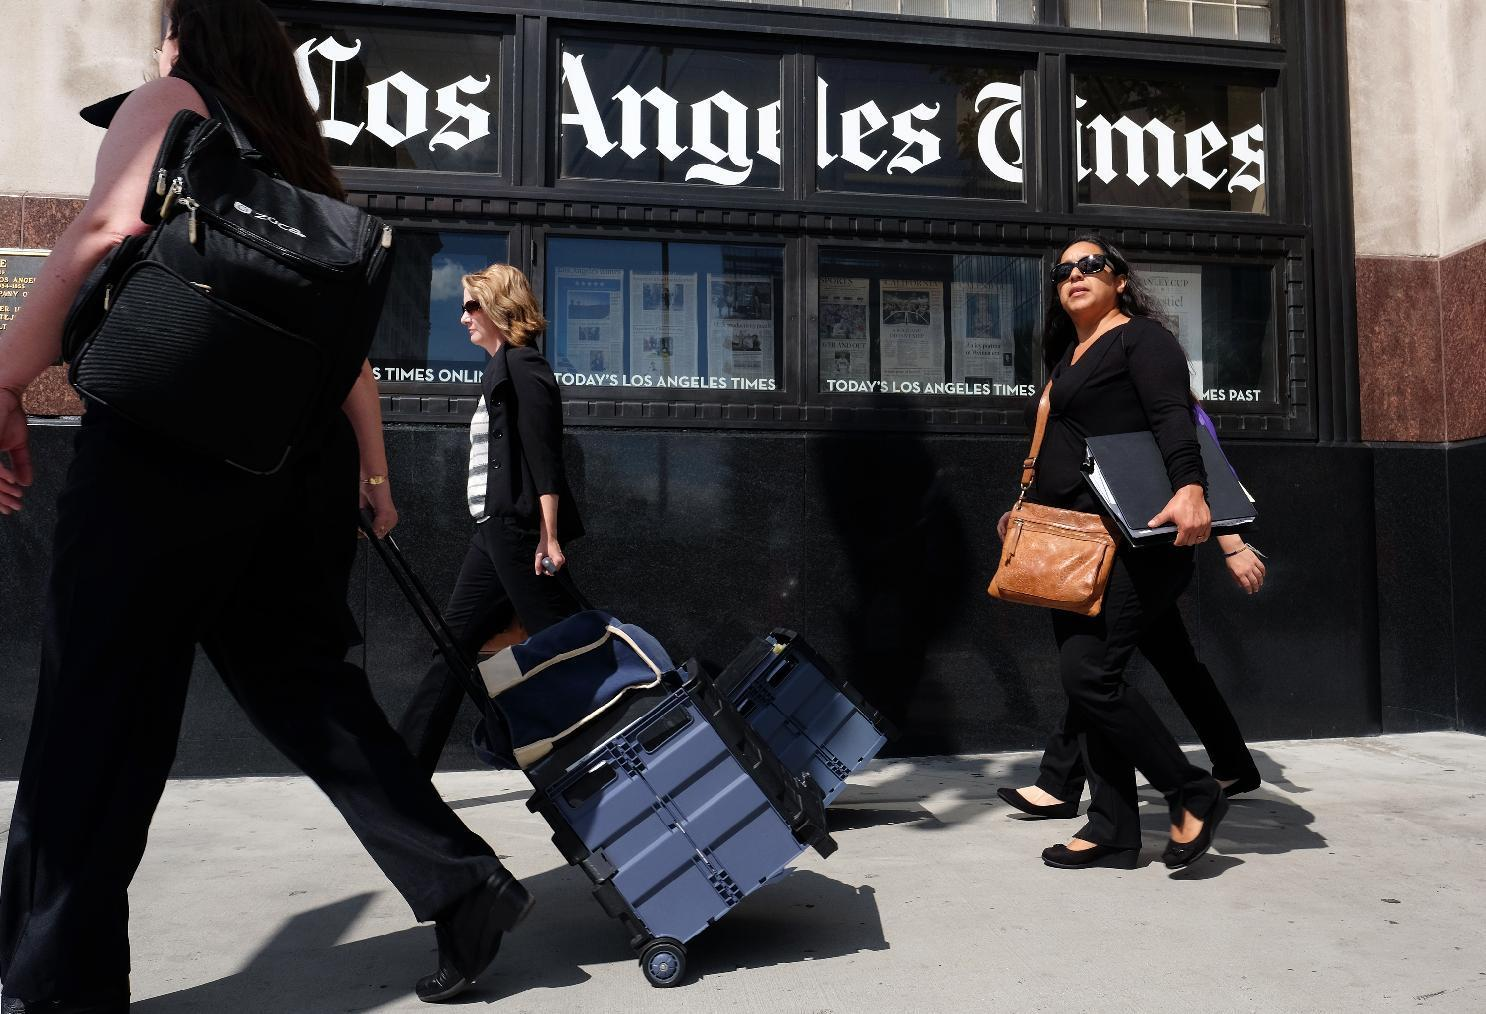 Tribune Publishing gets $44.4M from Chicago investor